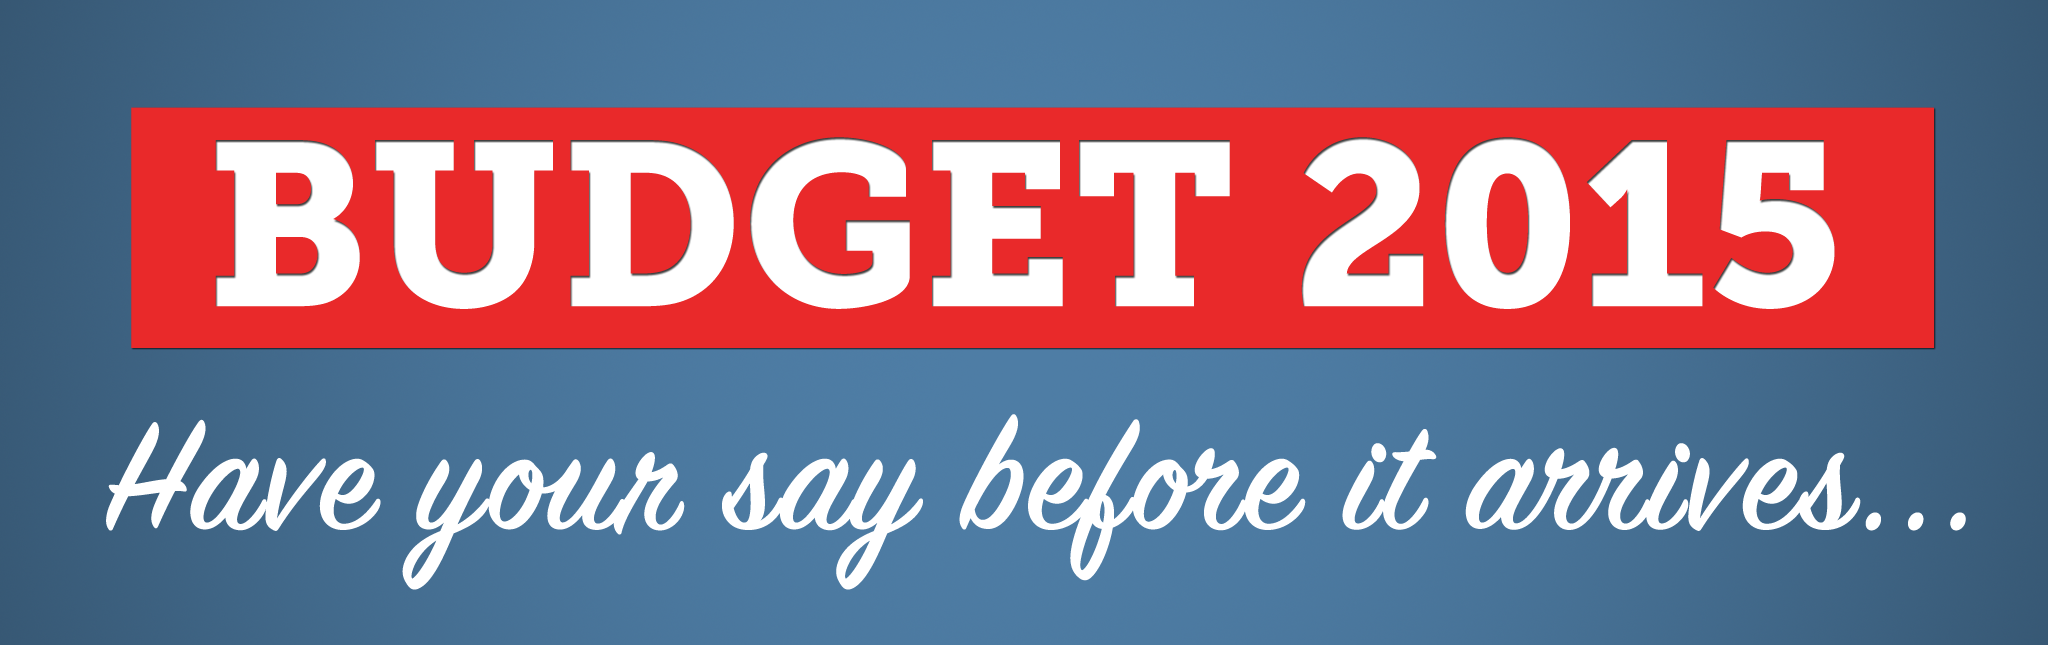 Budget_survey_banner_thin.png